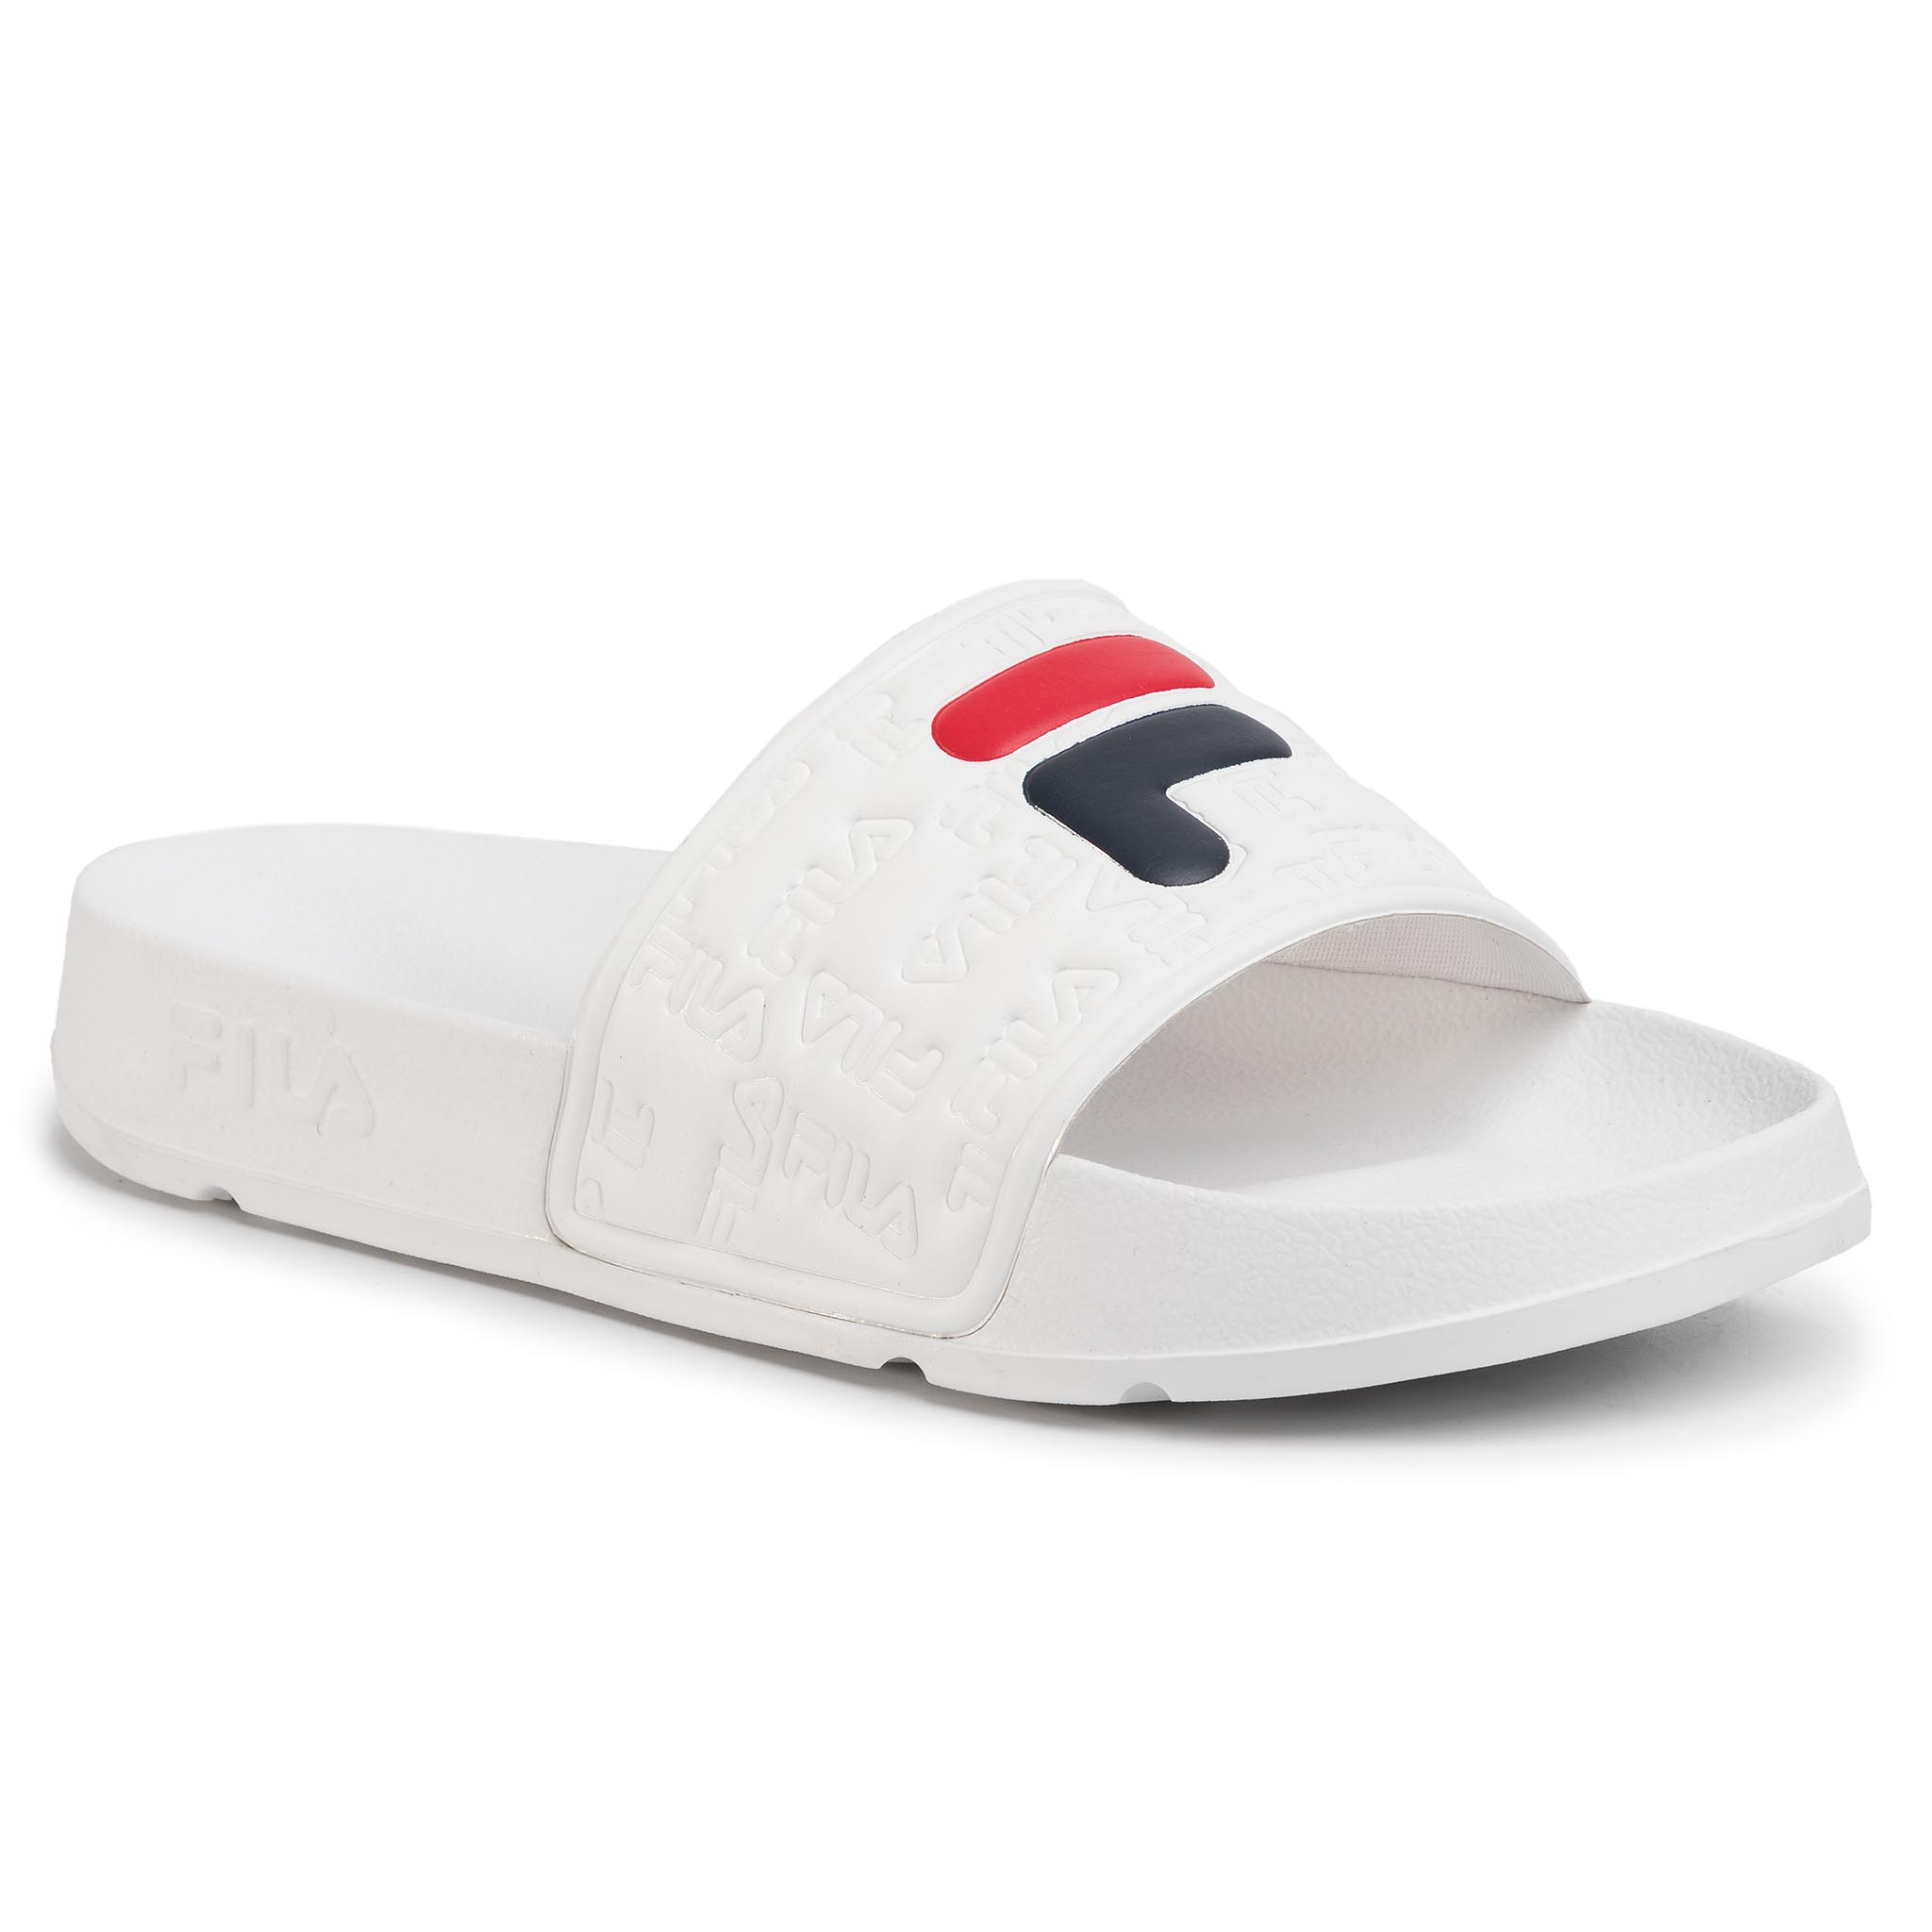 Šlepetės FILA - Boardwalk Slipper 2.0 Wmn 1010959.1FG White